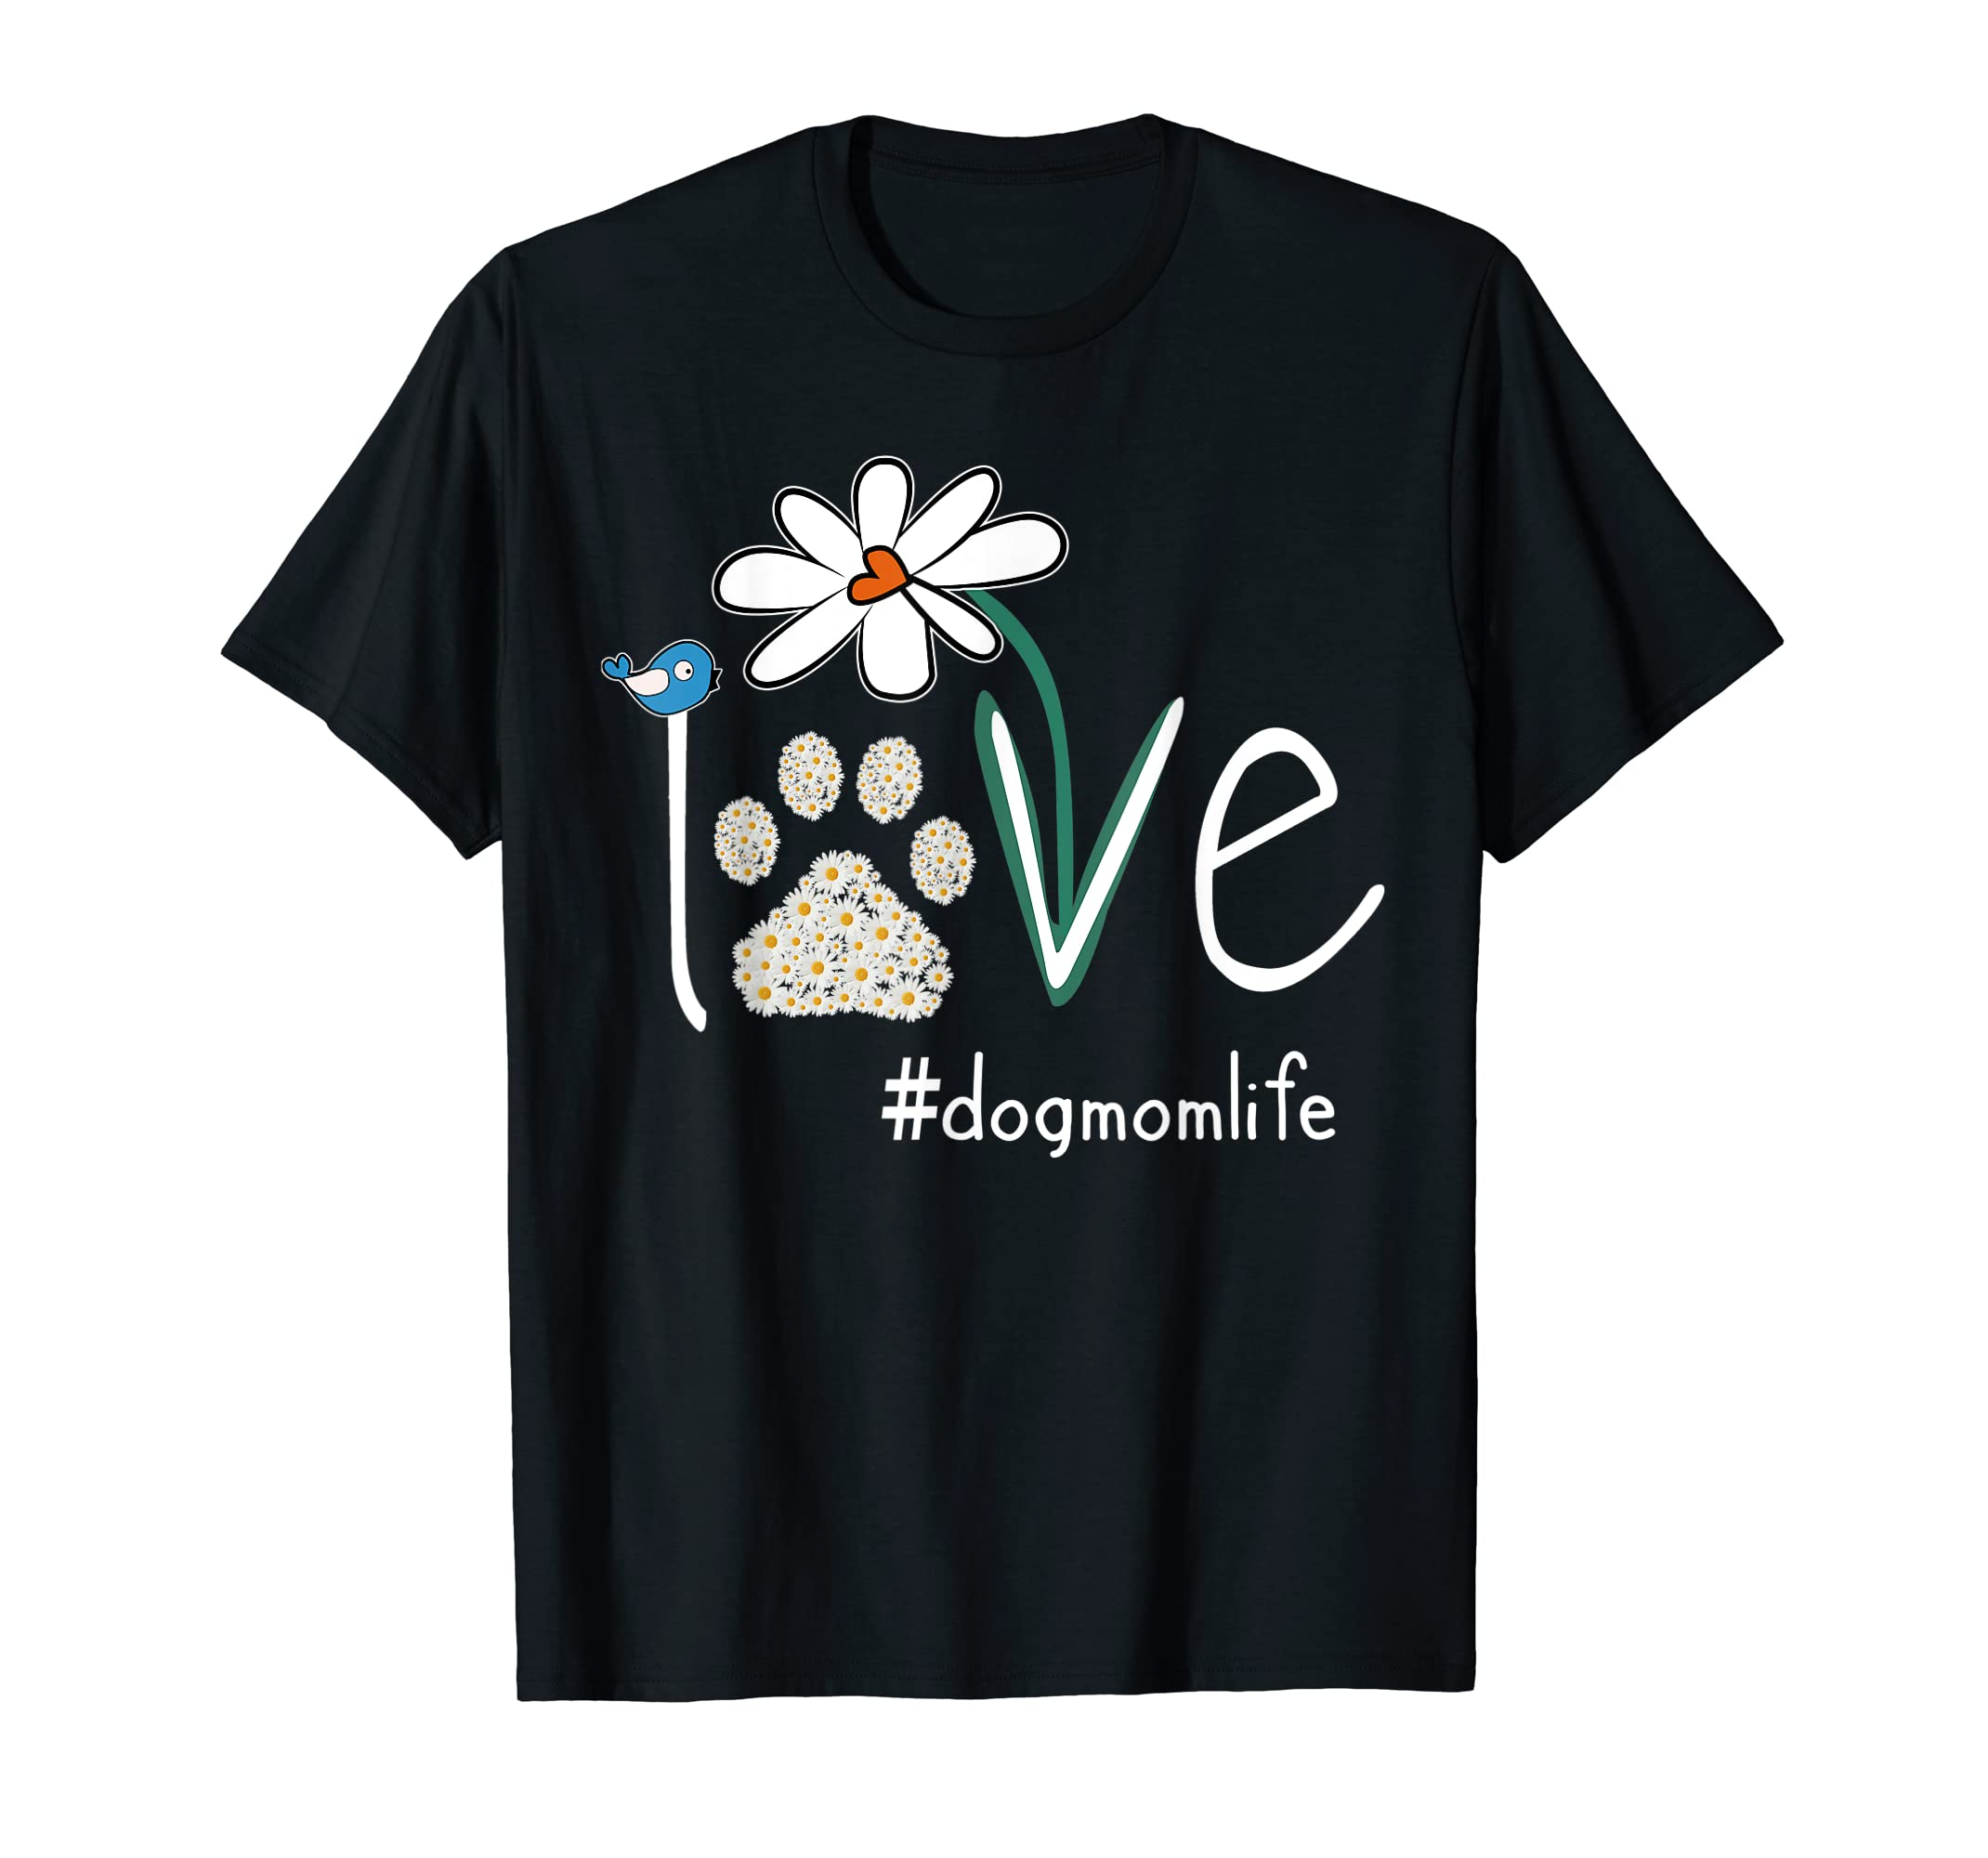 Love #dogmomlife Daisy Bird Cute T-Shirt Dog Mom Gift Tee-Men's T-Shirt-Black